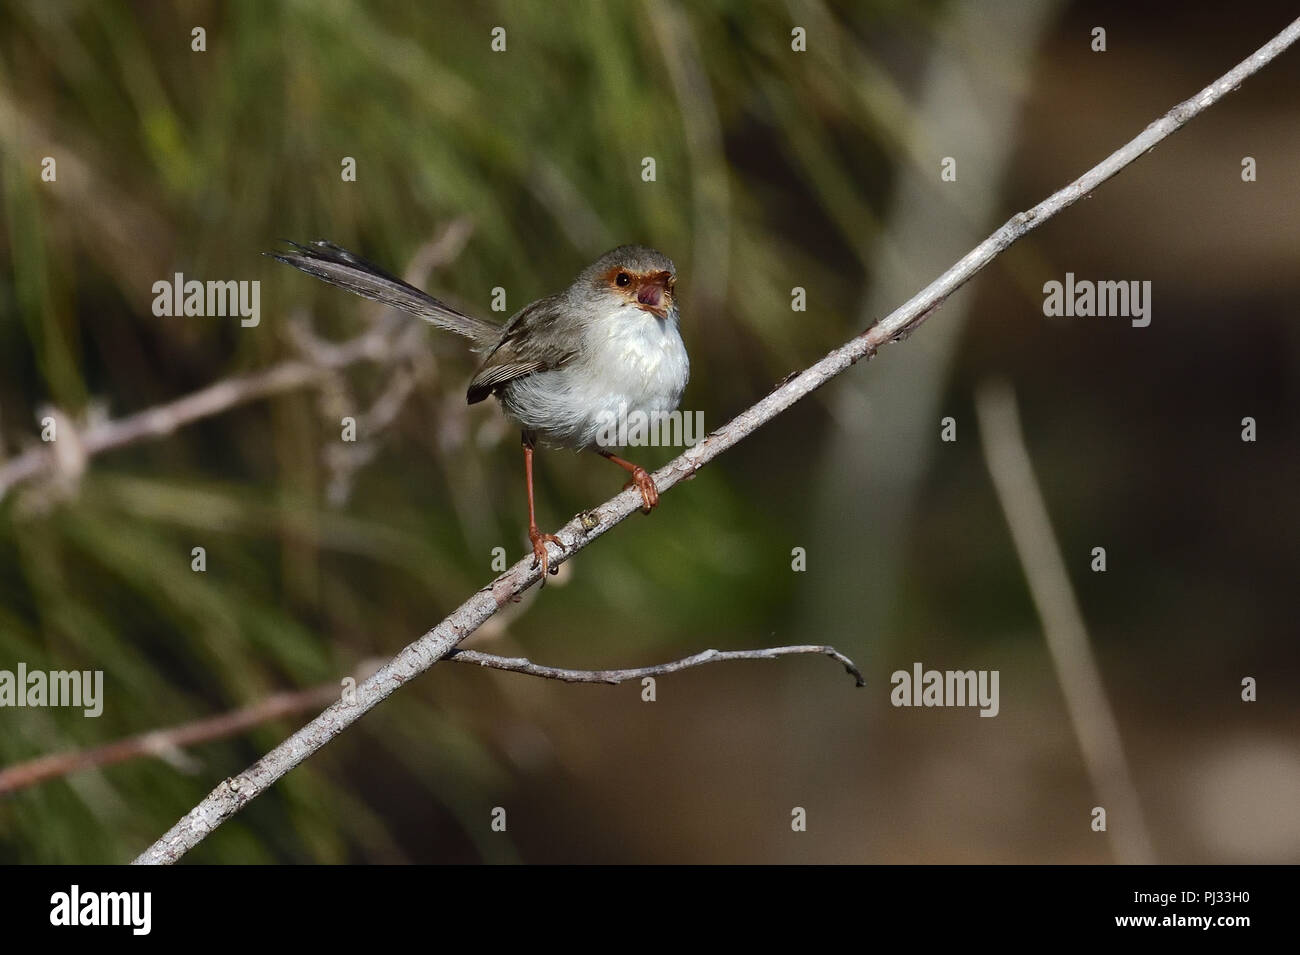 An Australian, Queensland Female Superb Fairy-wren ( Malurus cyaneus ) perched on a tree branch chirping - Stock Image